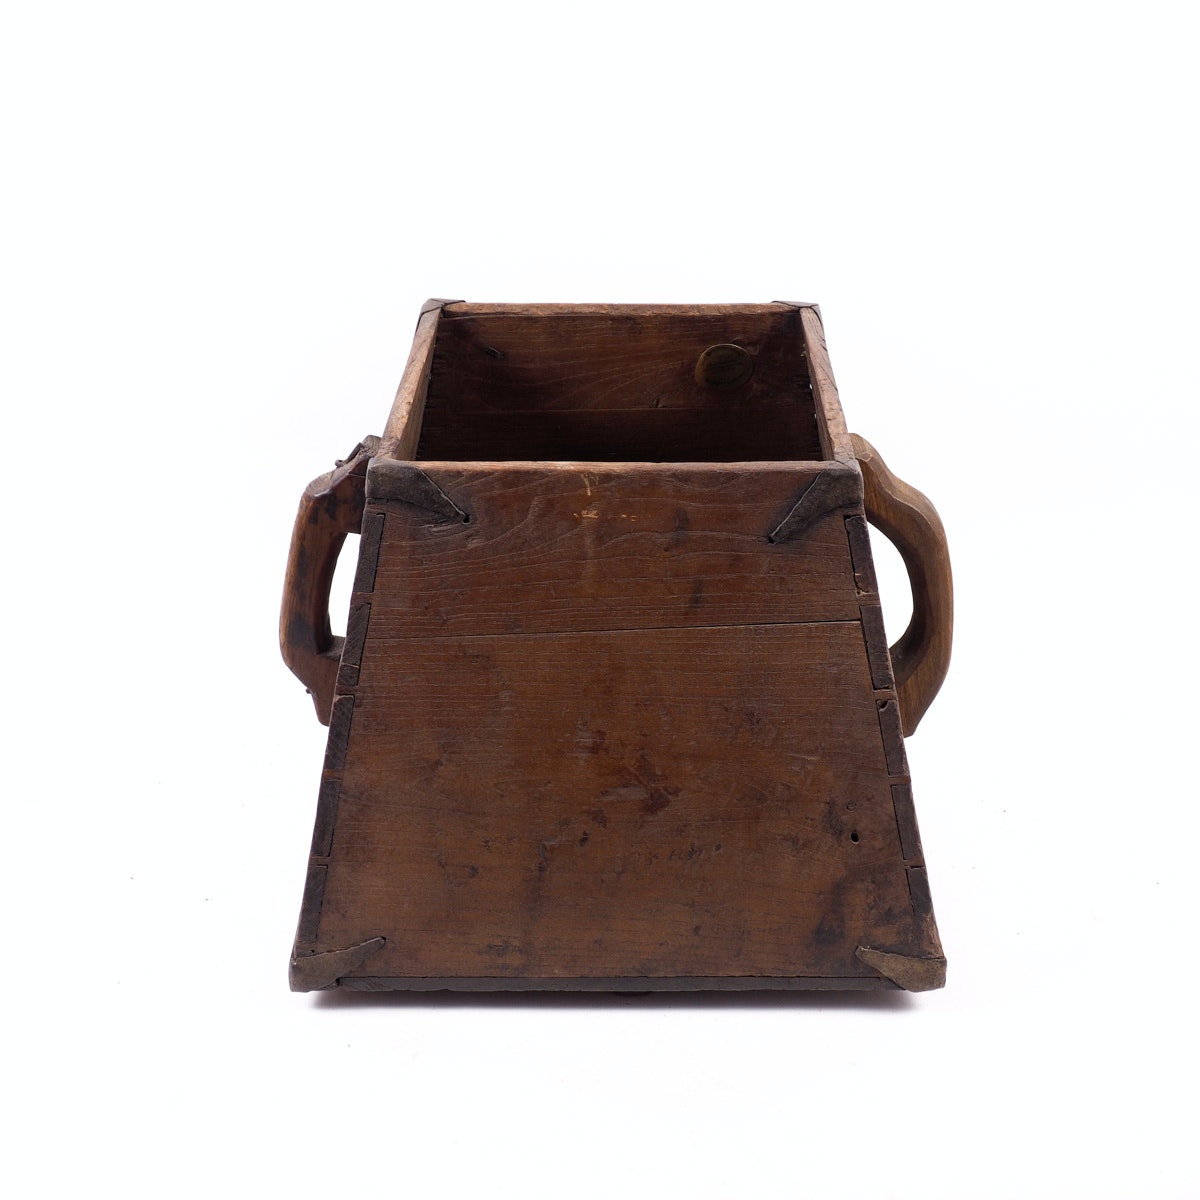 Antique Chinese Rice Bin